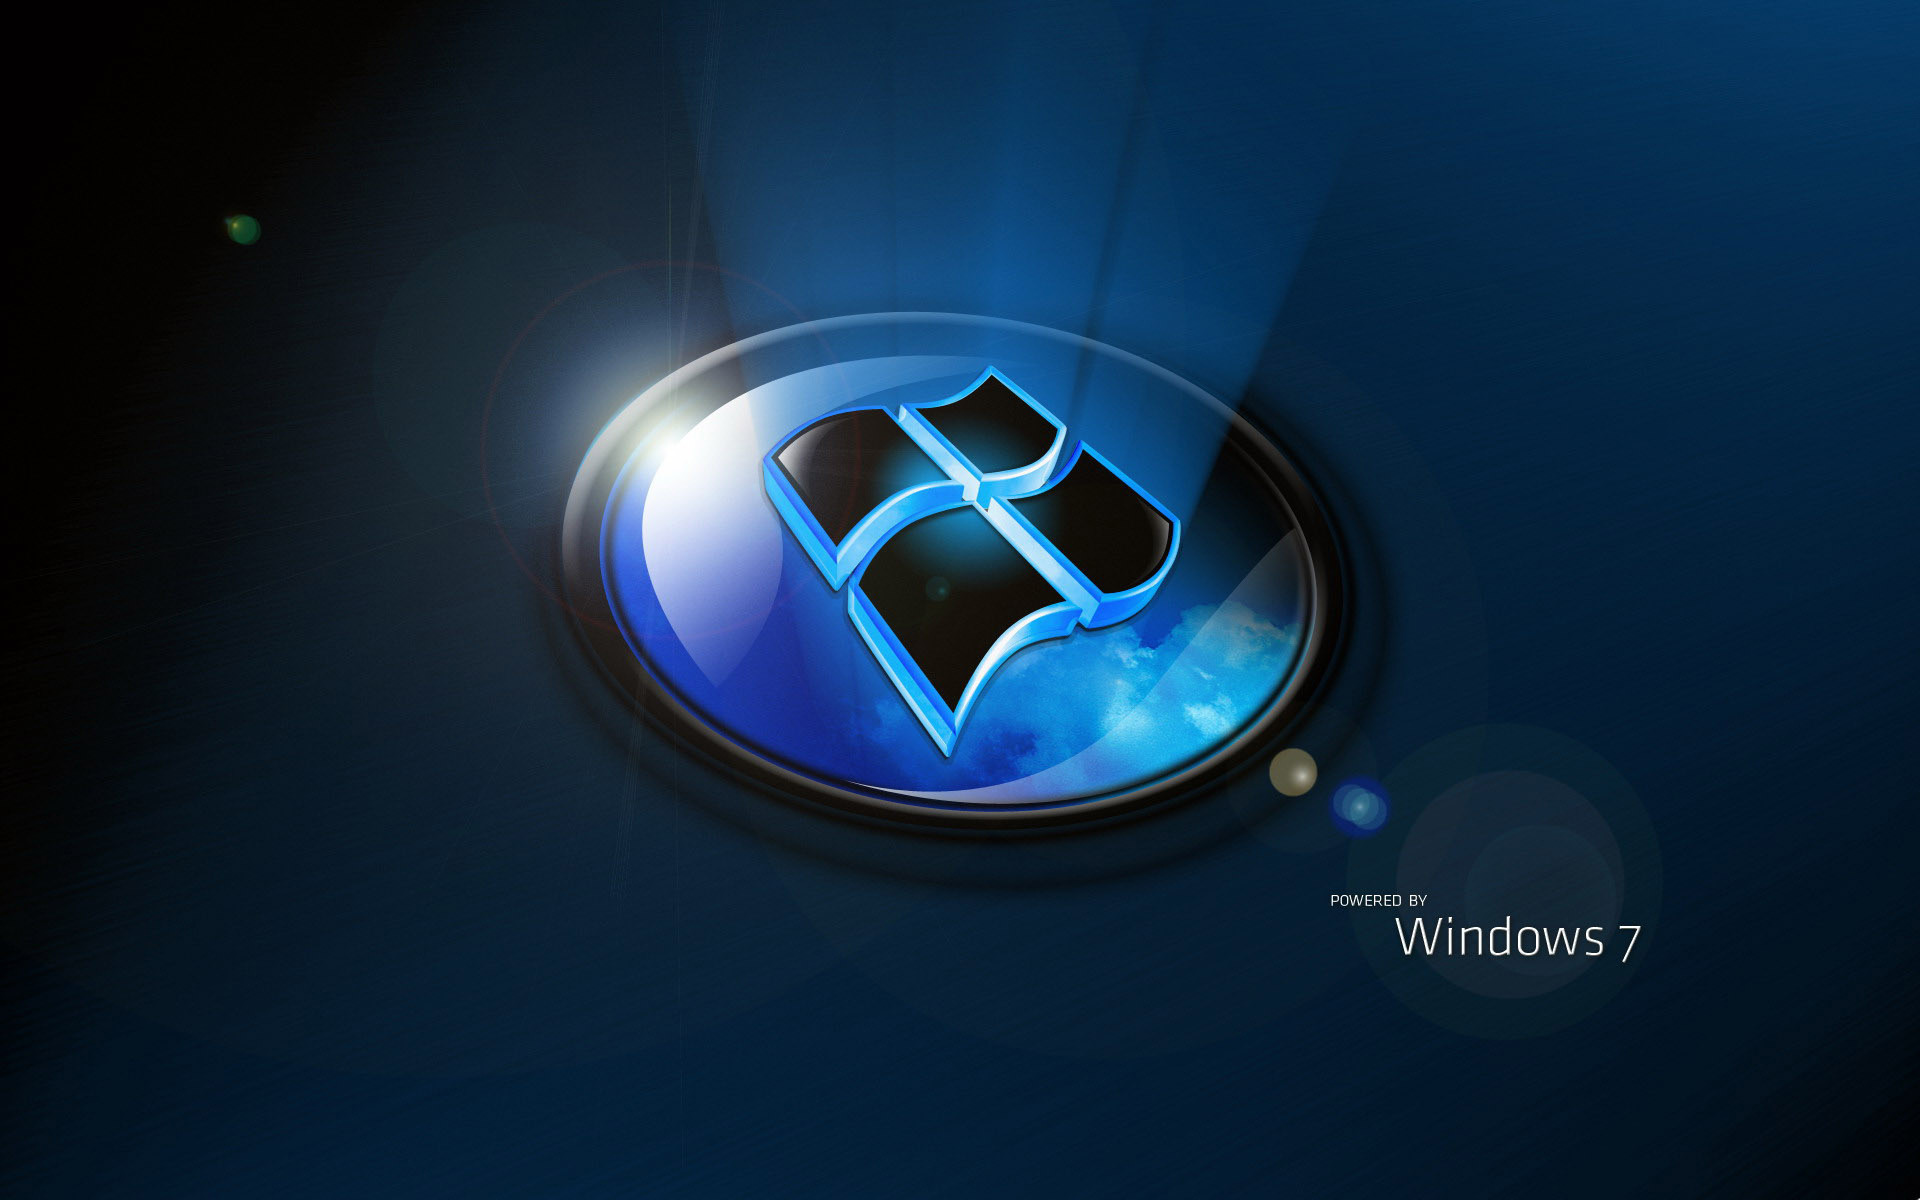 1920x1200 Desktop Wallpaper HD 3d Windows 7